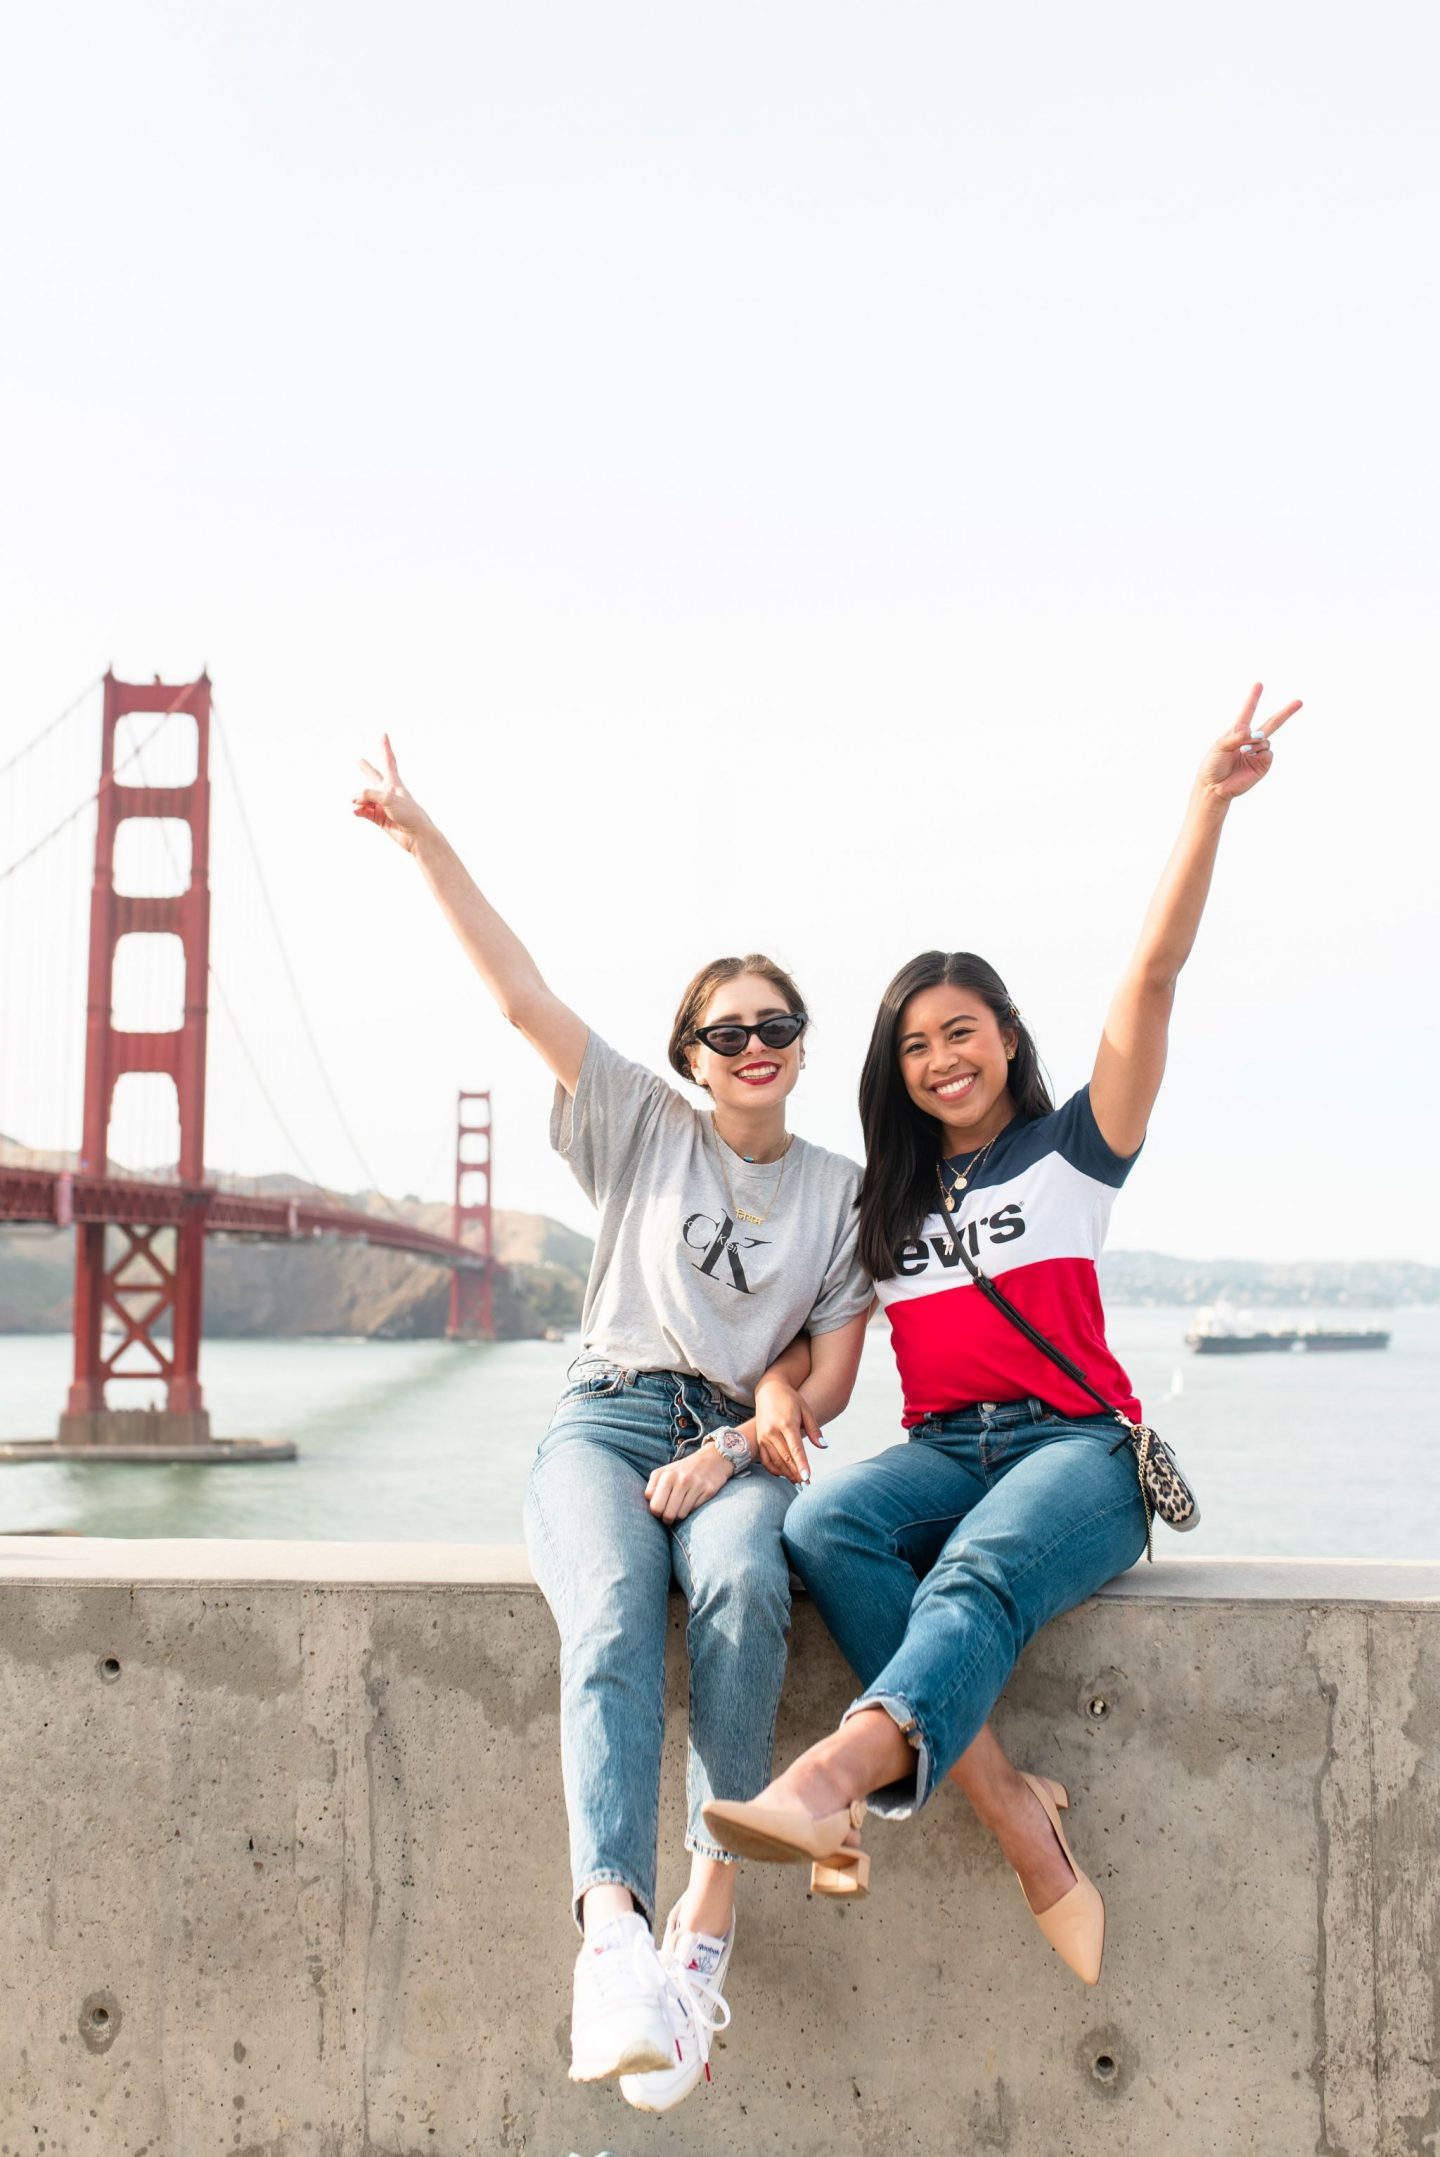 Golden Gate Bridge - Best Friends posing in front of the golden gate  - San Francisco's Most Instagrammable Places